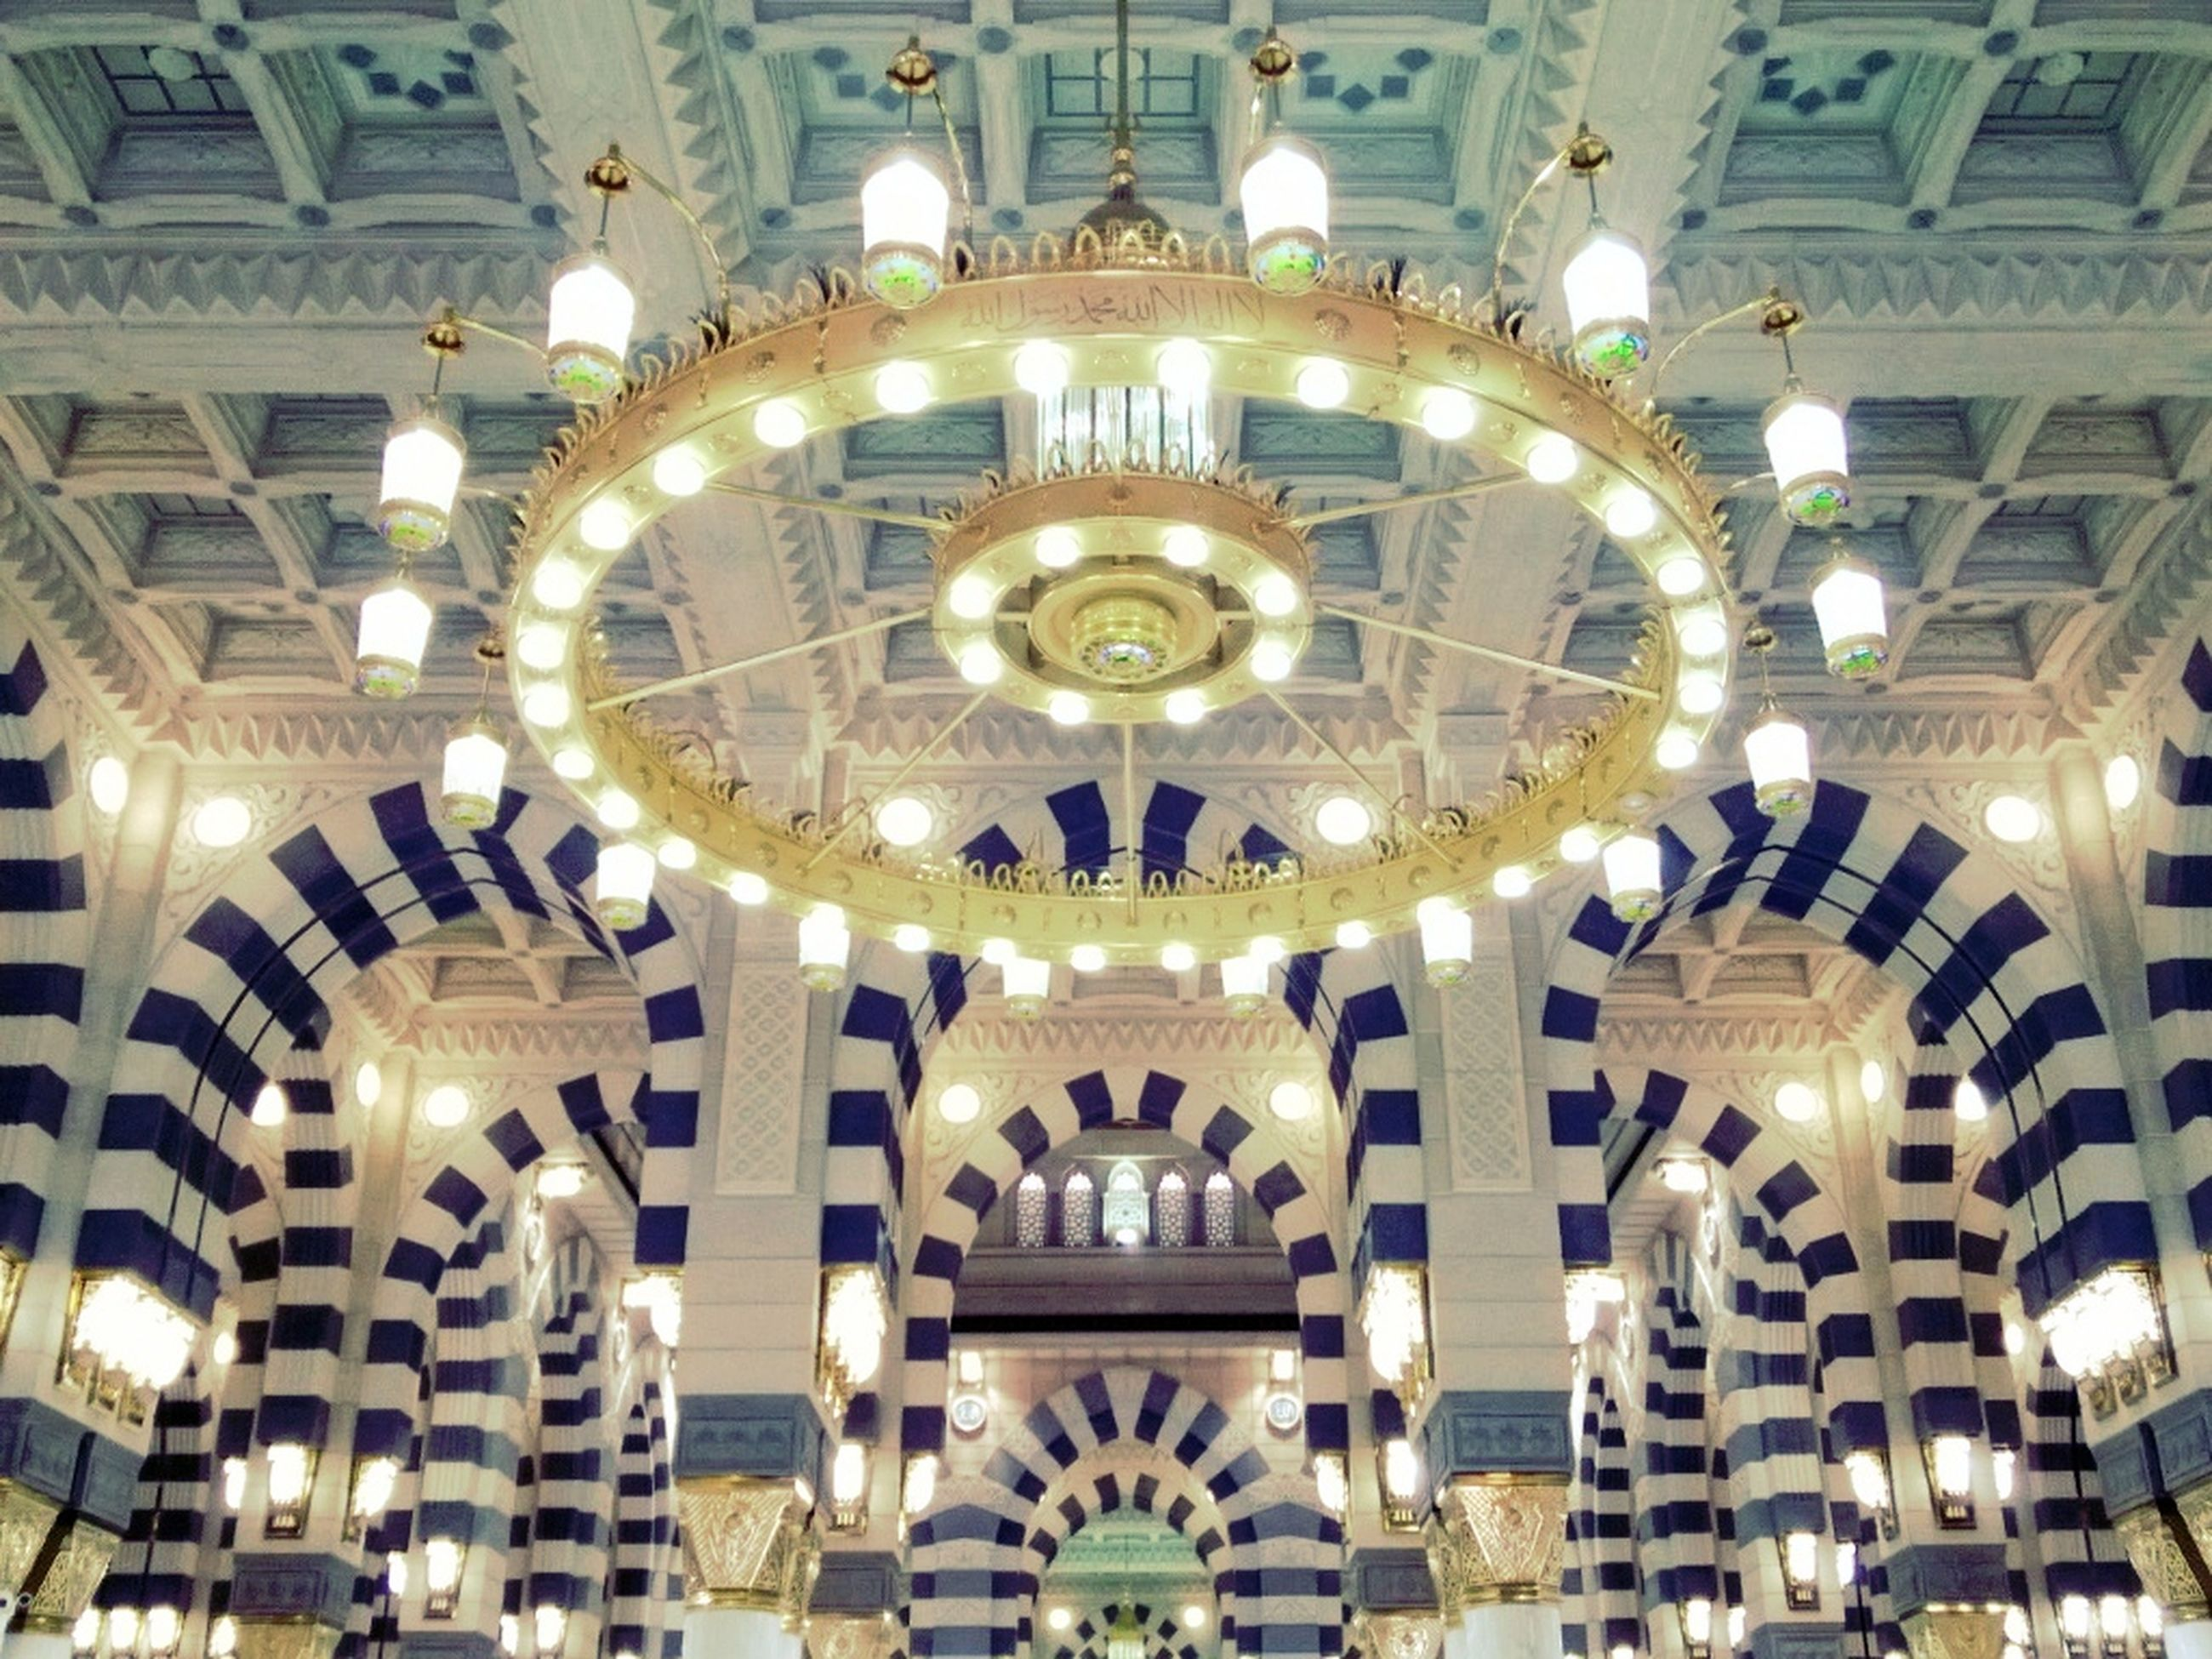 indoors, ceiling, architecture, built structure, low angle view, illuminated, place of worship, religion, ornate, church, chandelier, arch, hanging, circle, spirituality, design, lighting equipment, dome, famous place